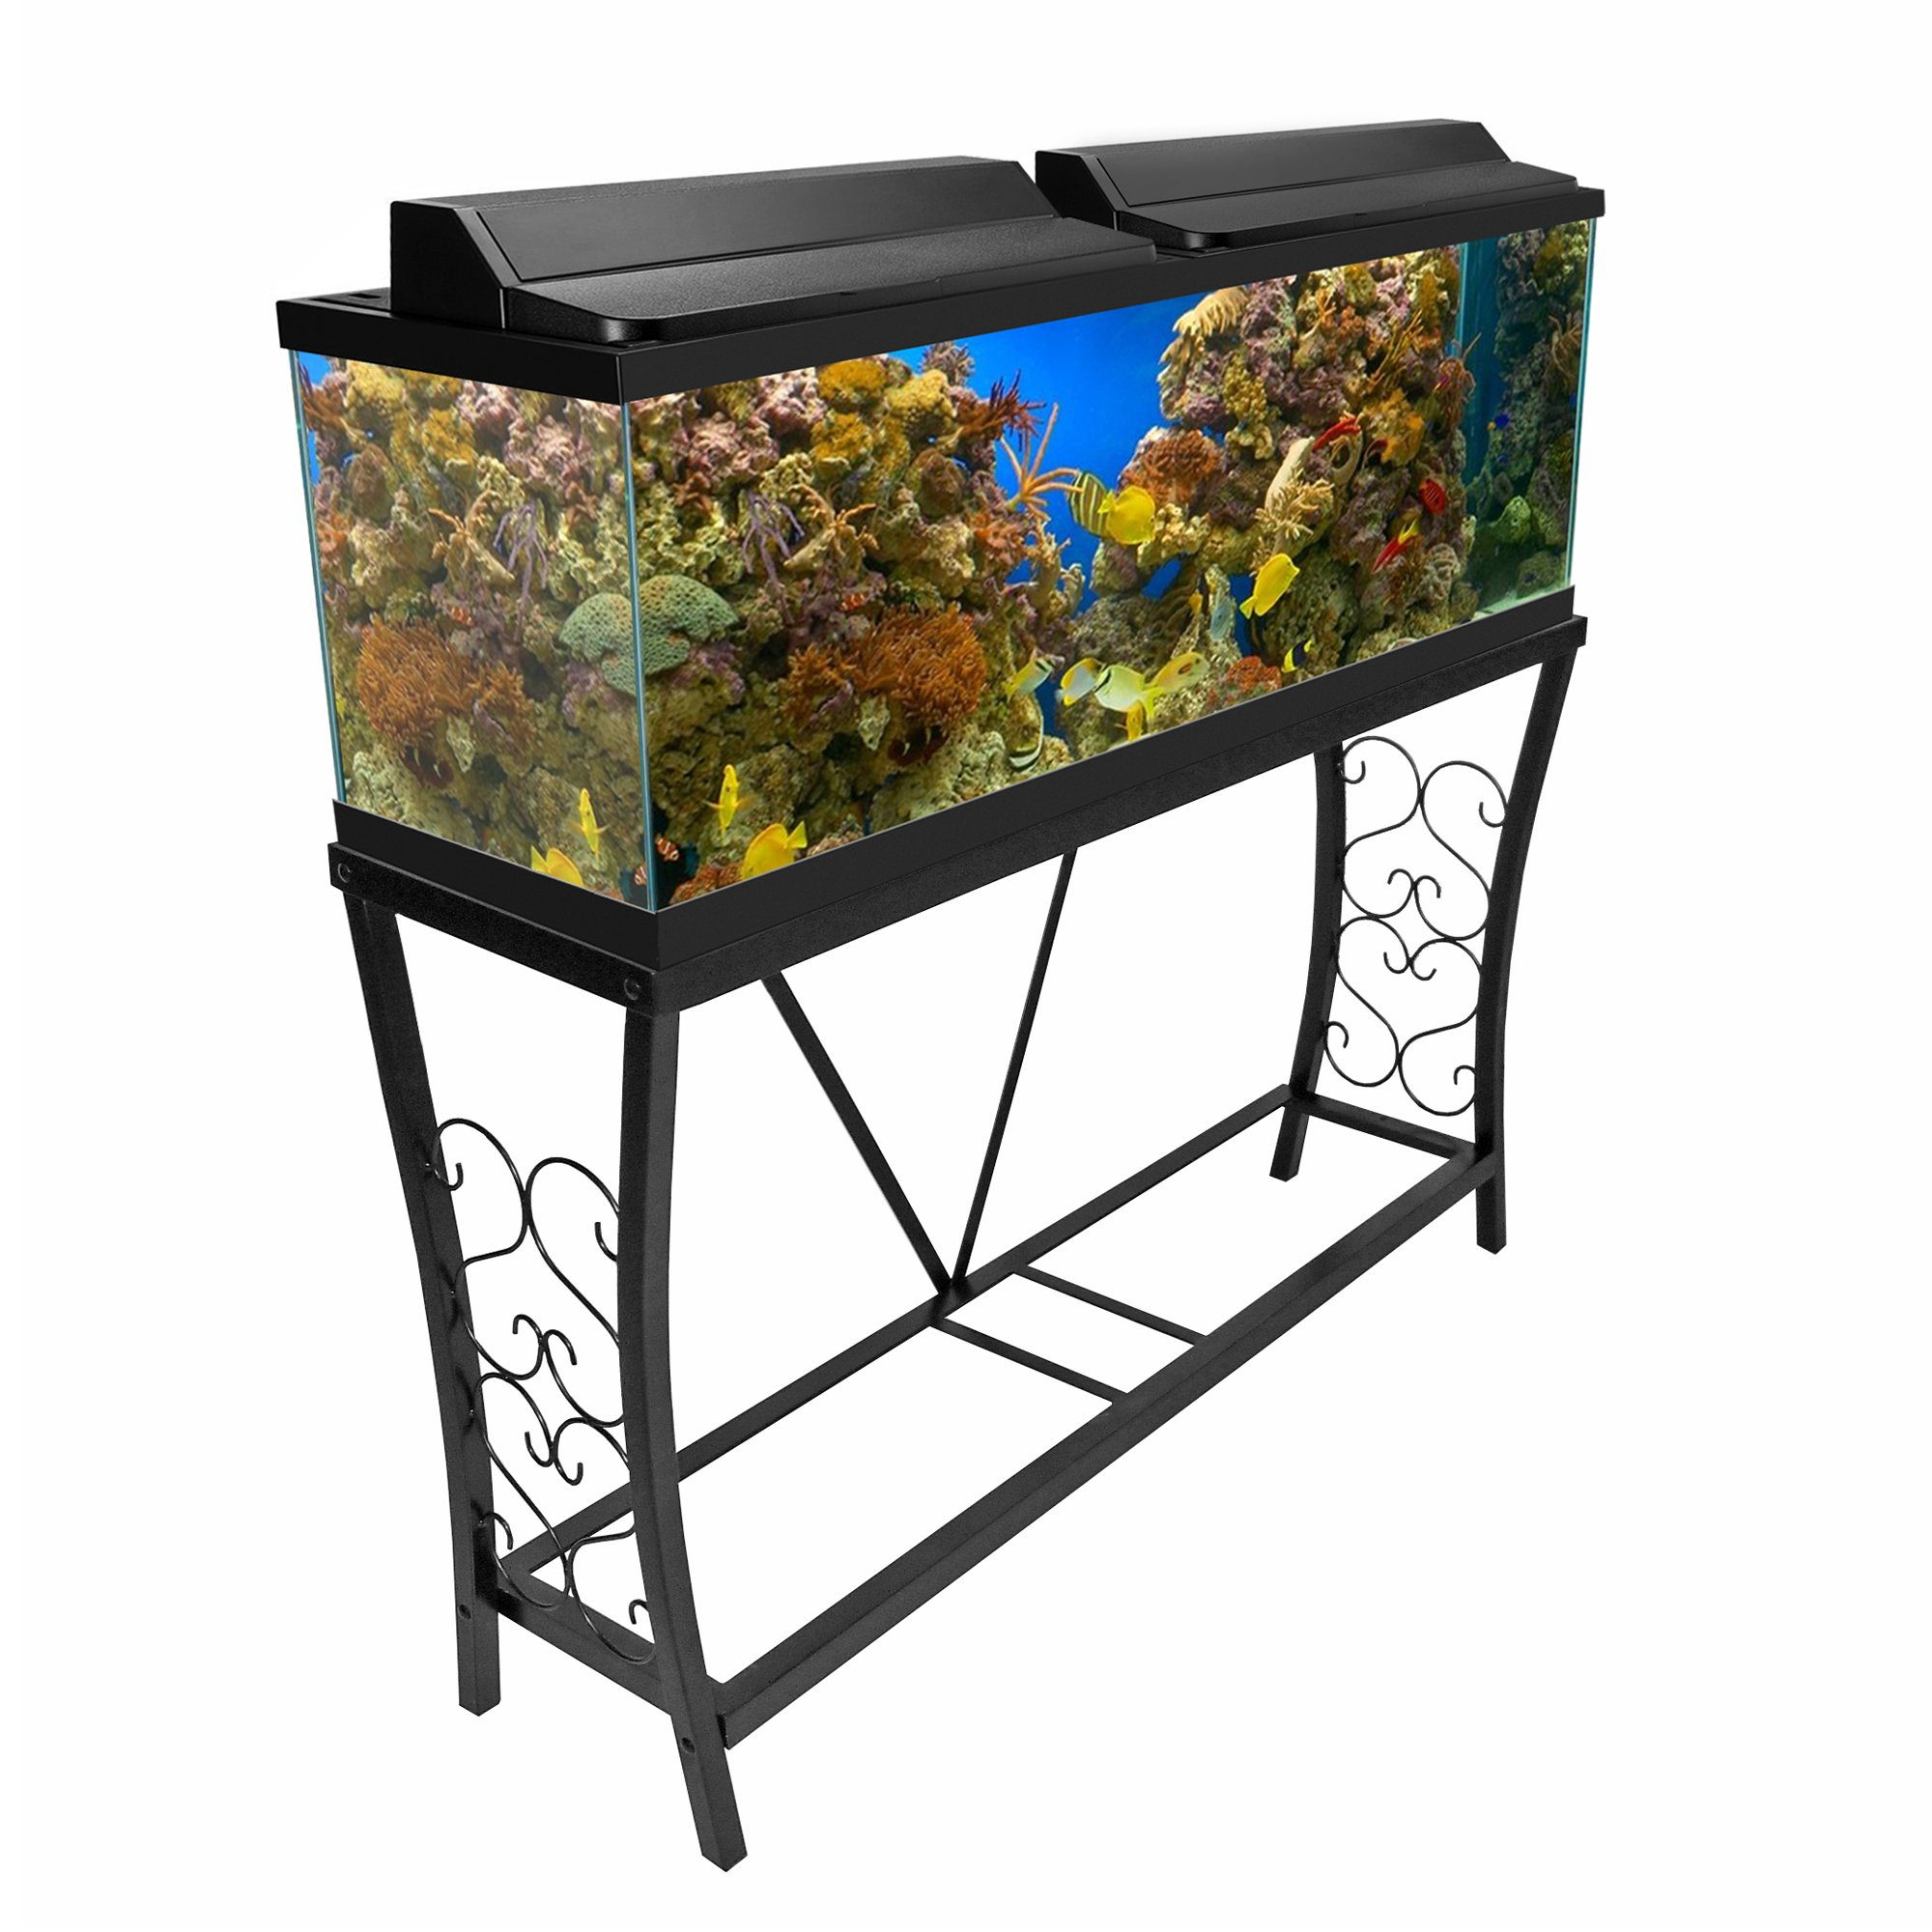 Aquatic Fundamentals Black Scroll Aquarium Stand, 55 Gallons